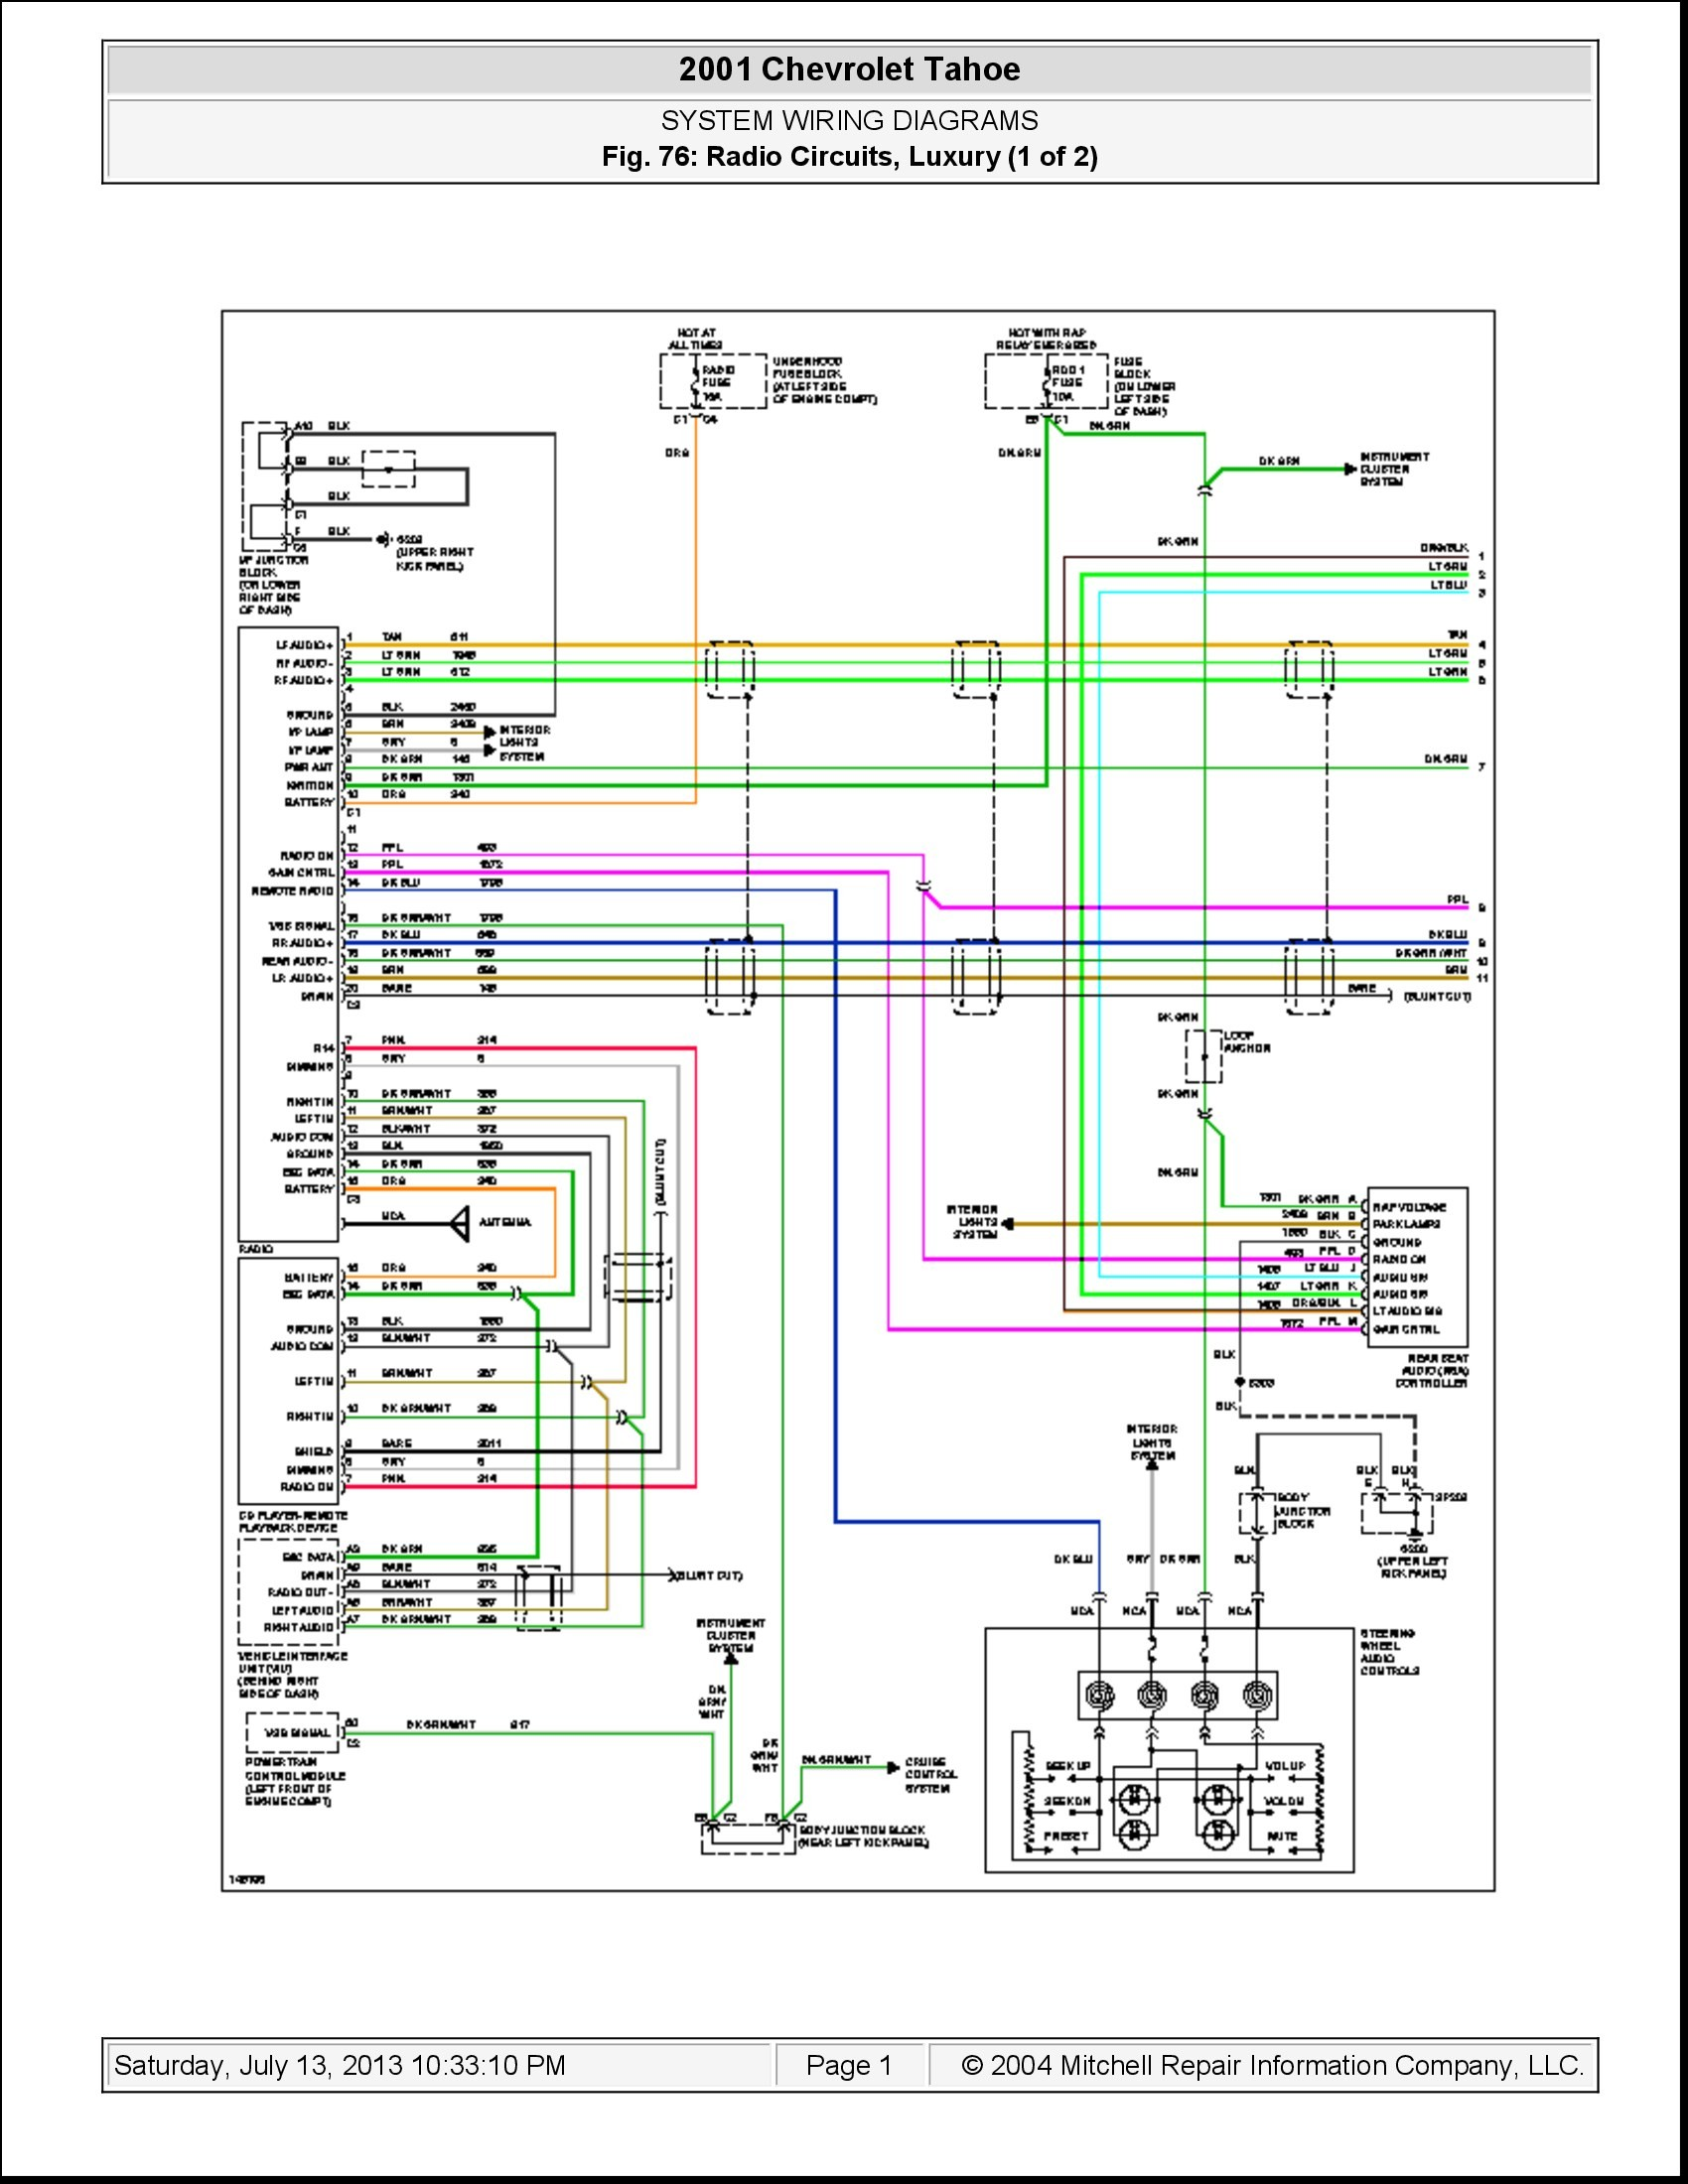 1996 Chevy S10 Wiring Diagram 2001 Chevy S10 Radio Wiring Diagram Collection Of 1996 Chevy S10 Wiring Diagram 1997 Chevy S10 Wiring Diagram Collection